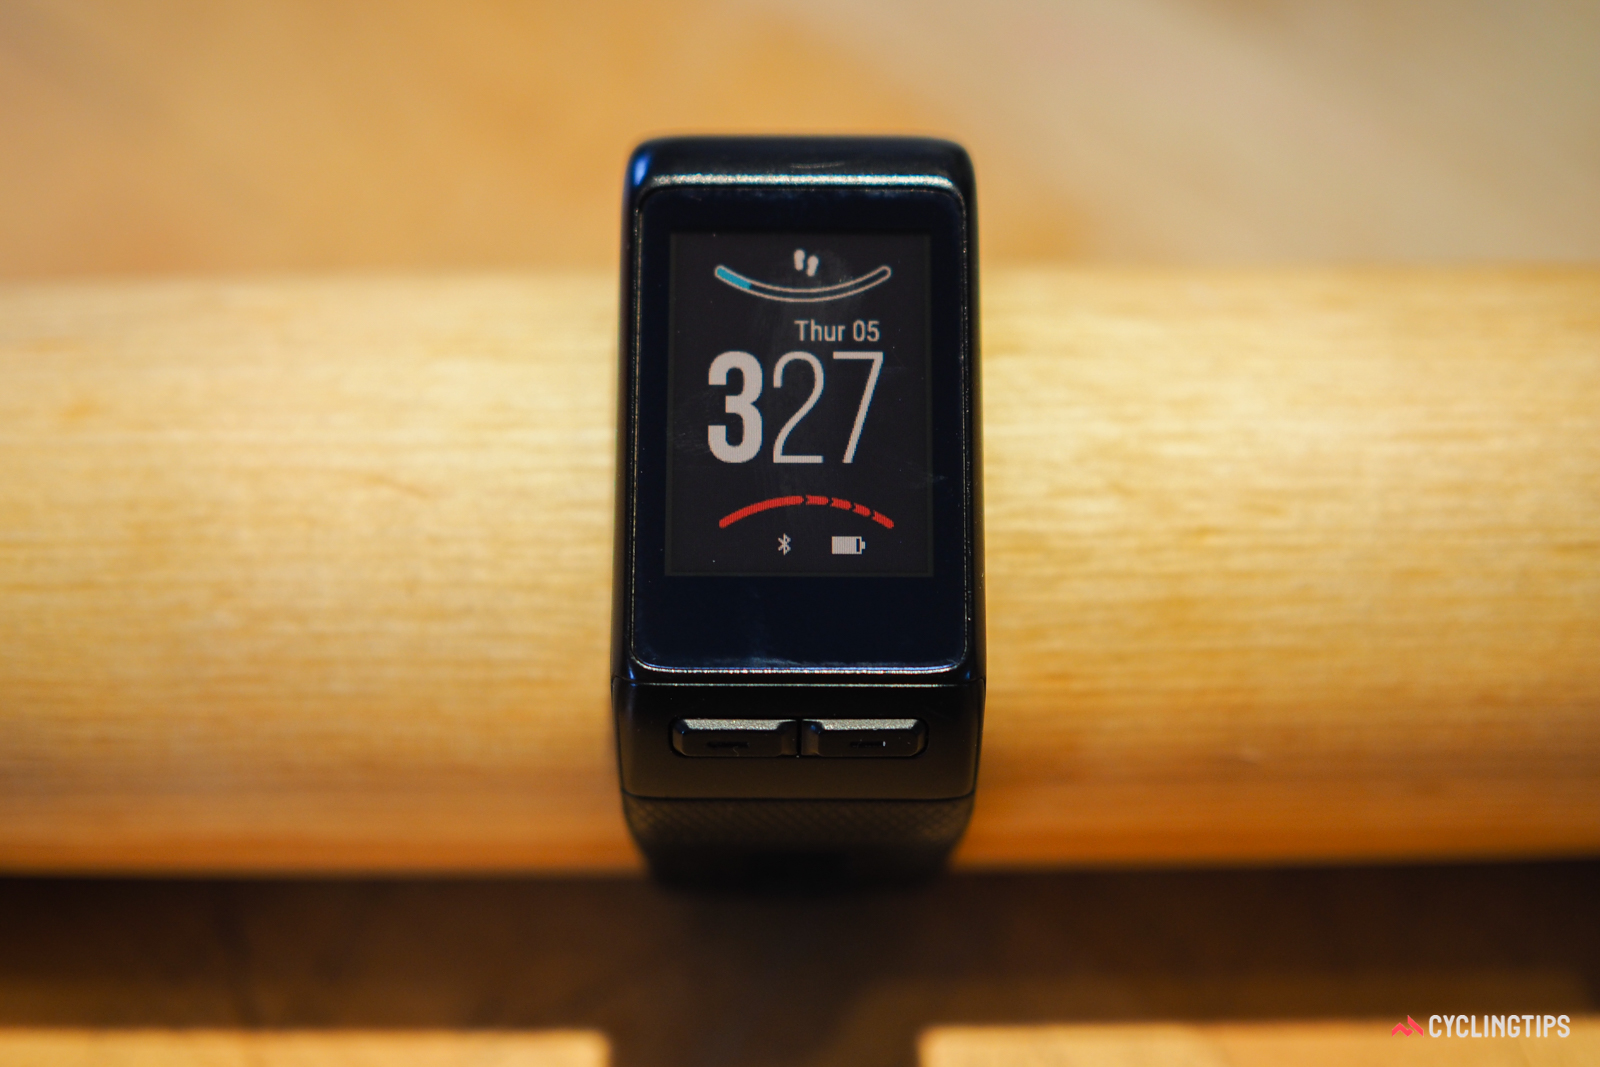 Overall, the Garmin Vivoactive HR is a more fully featured smartwatch than the Fitbit Surge. The standard main screen provides basic information such as time of day, the day, and the date, as well as visual measures of your daily step goal and how frequently you should be getting up from your chair to move around.